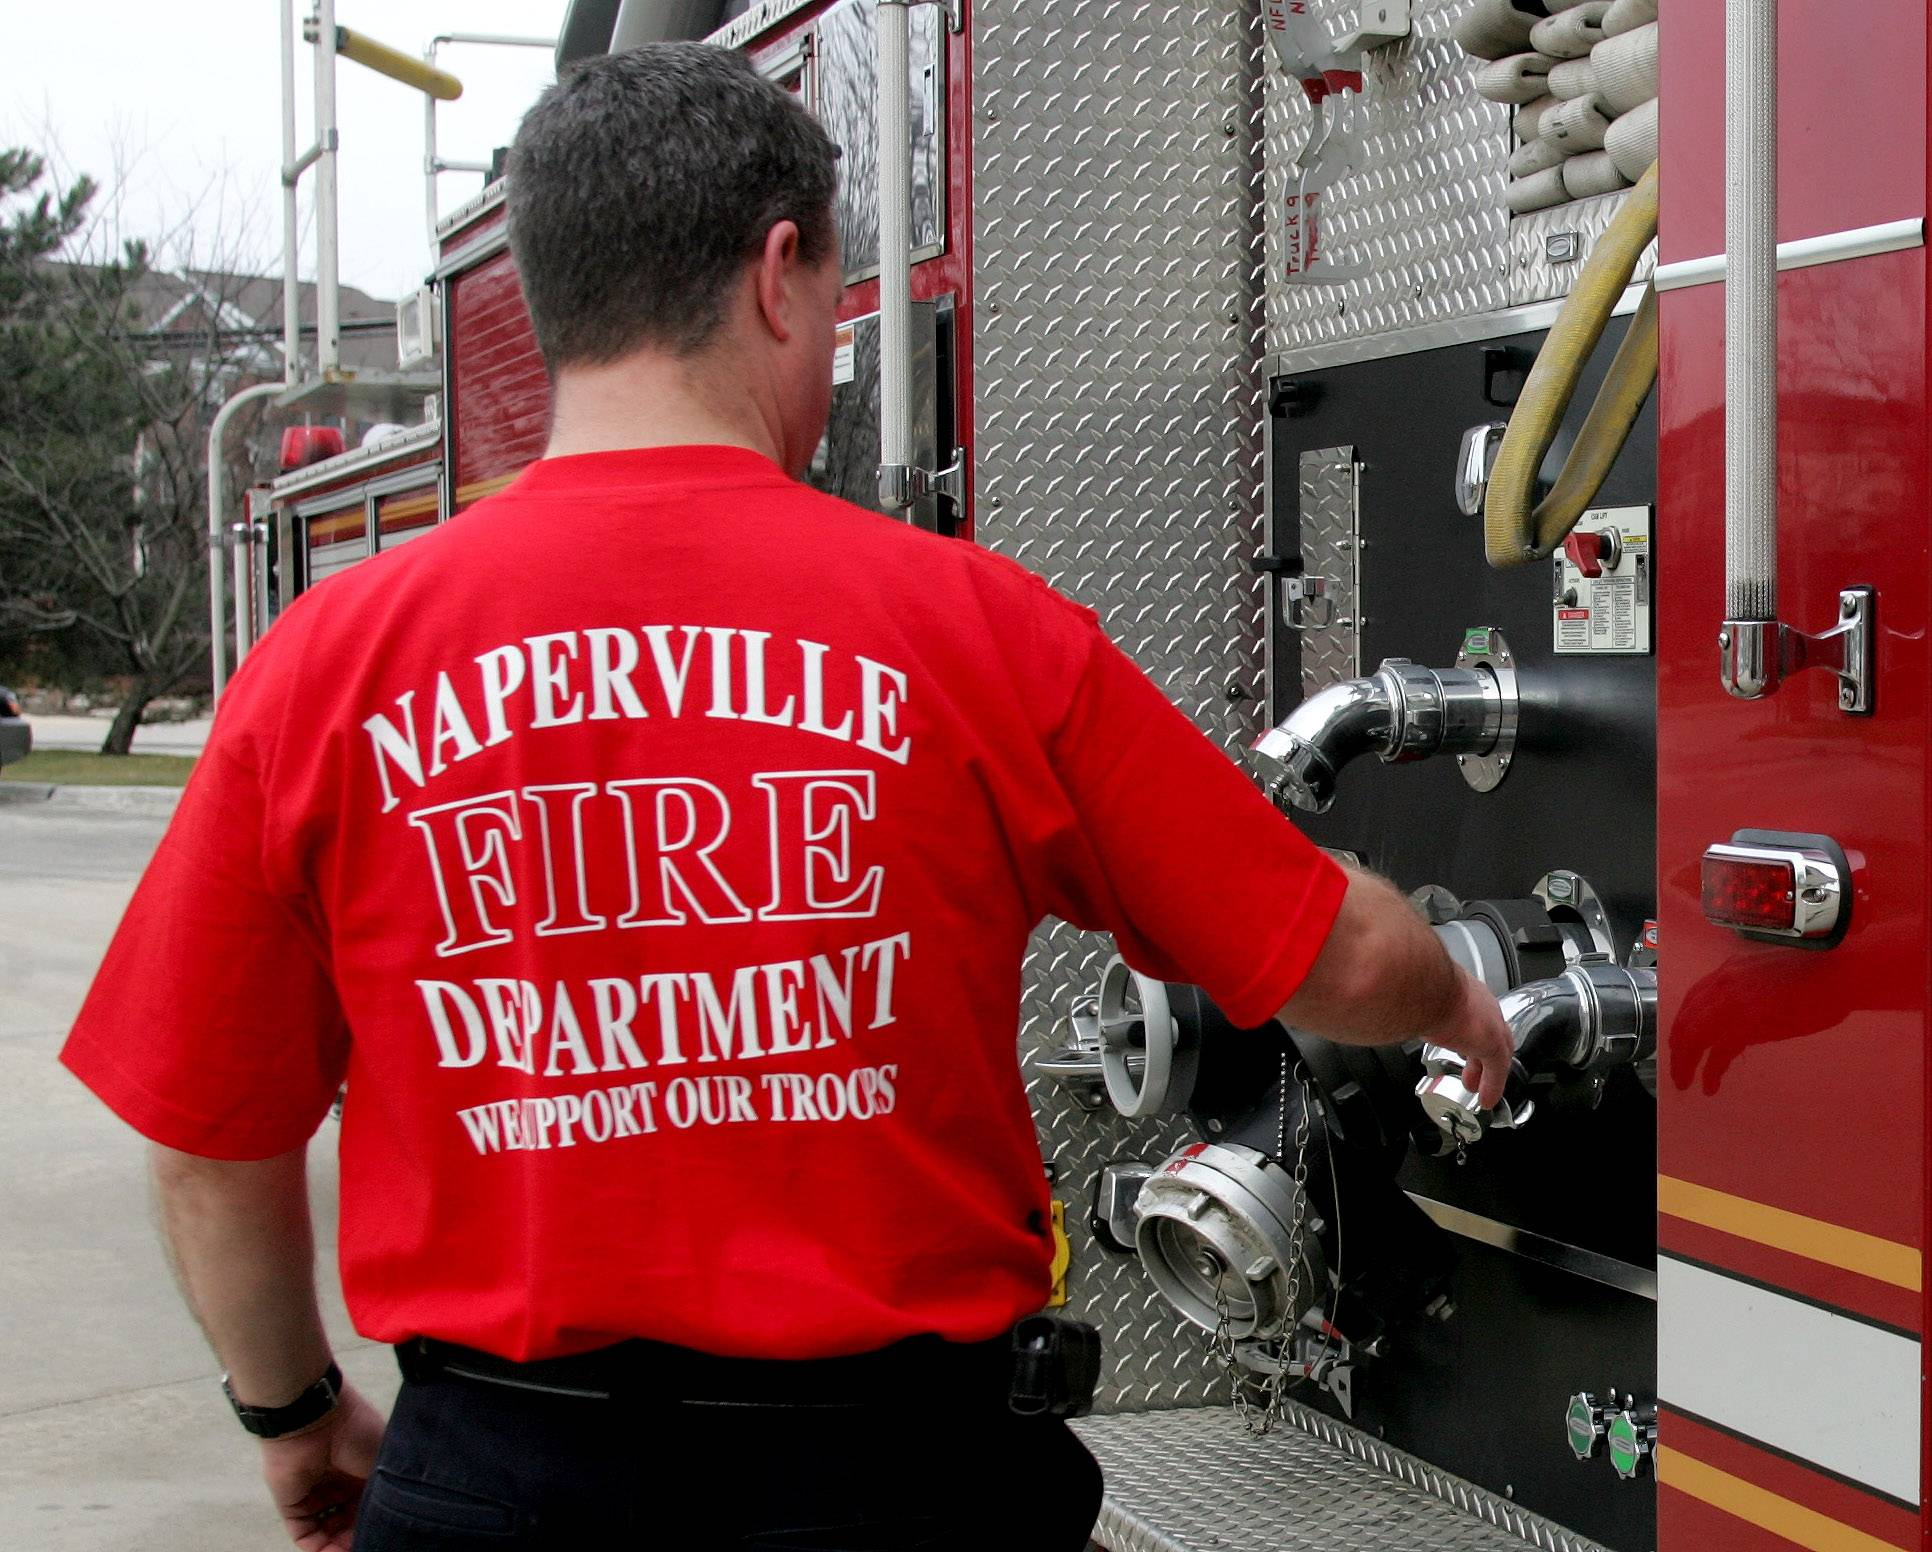 Pensions for firefighters and police in Naperville could cost the city up to $4.5 million more this year than last because of new mortality estimates that say retirees are living two years longer than previously thought.